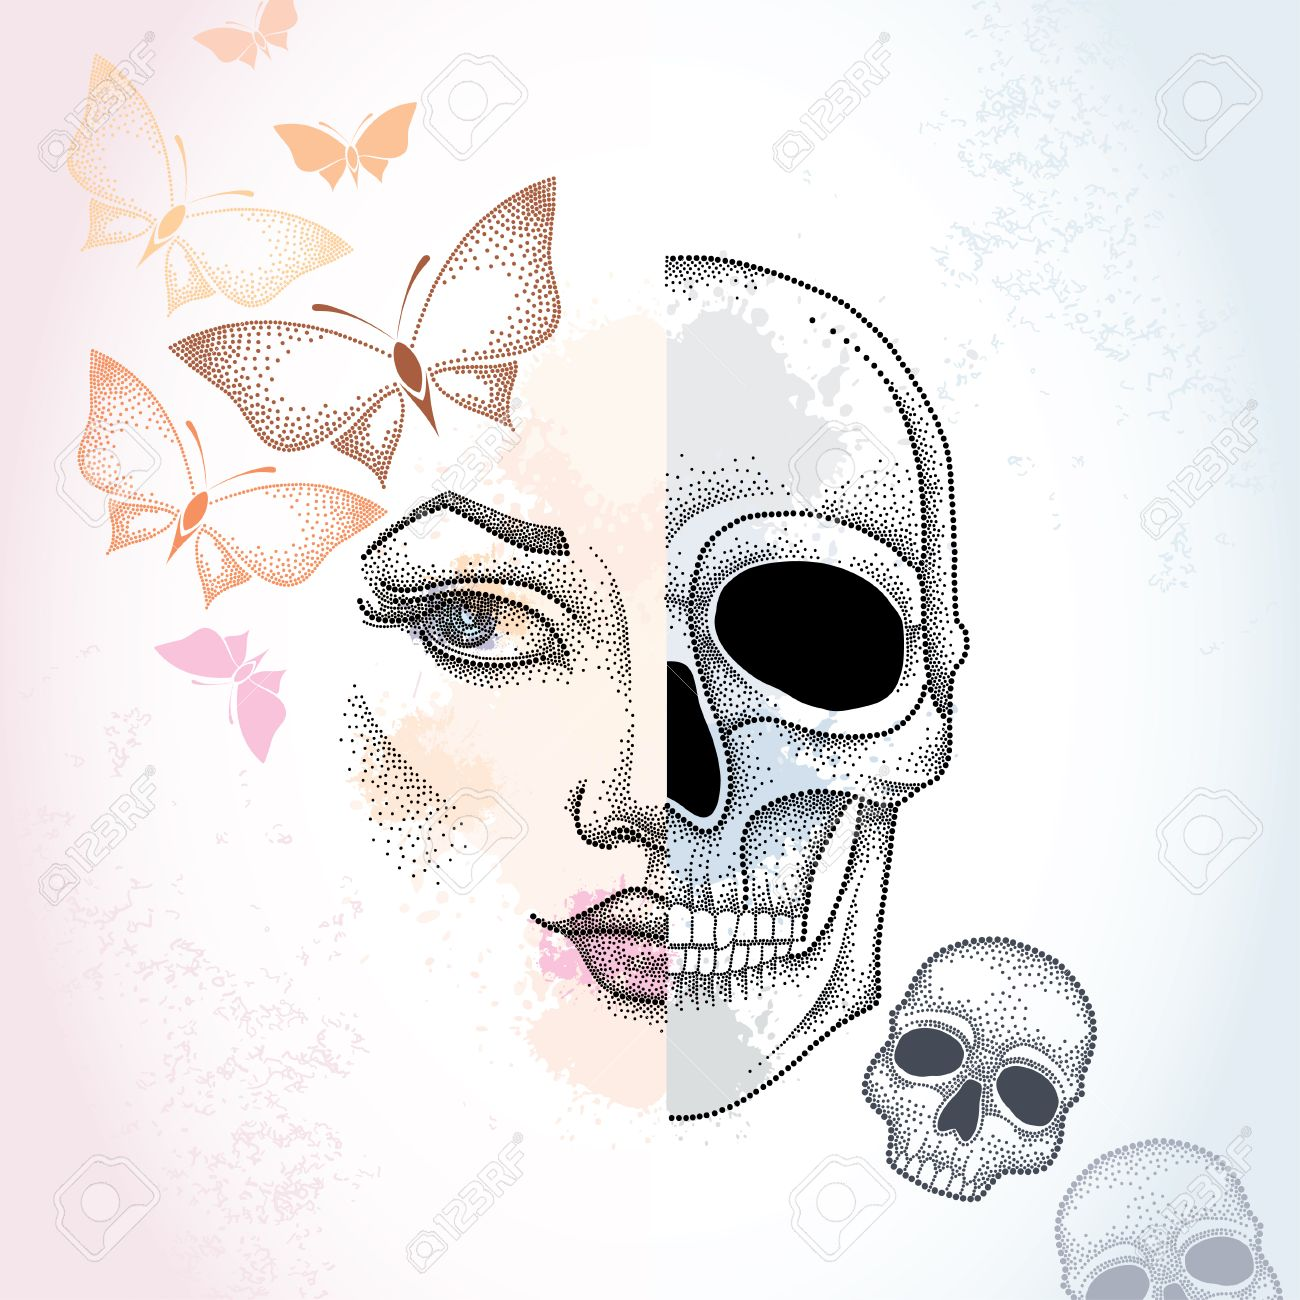 Dotted Half Beautiful Woman Face And Skull On The Pastel Blots